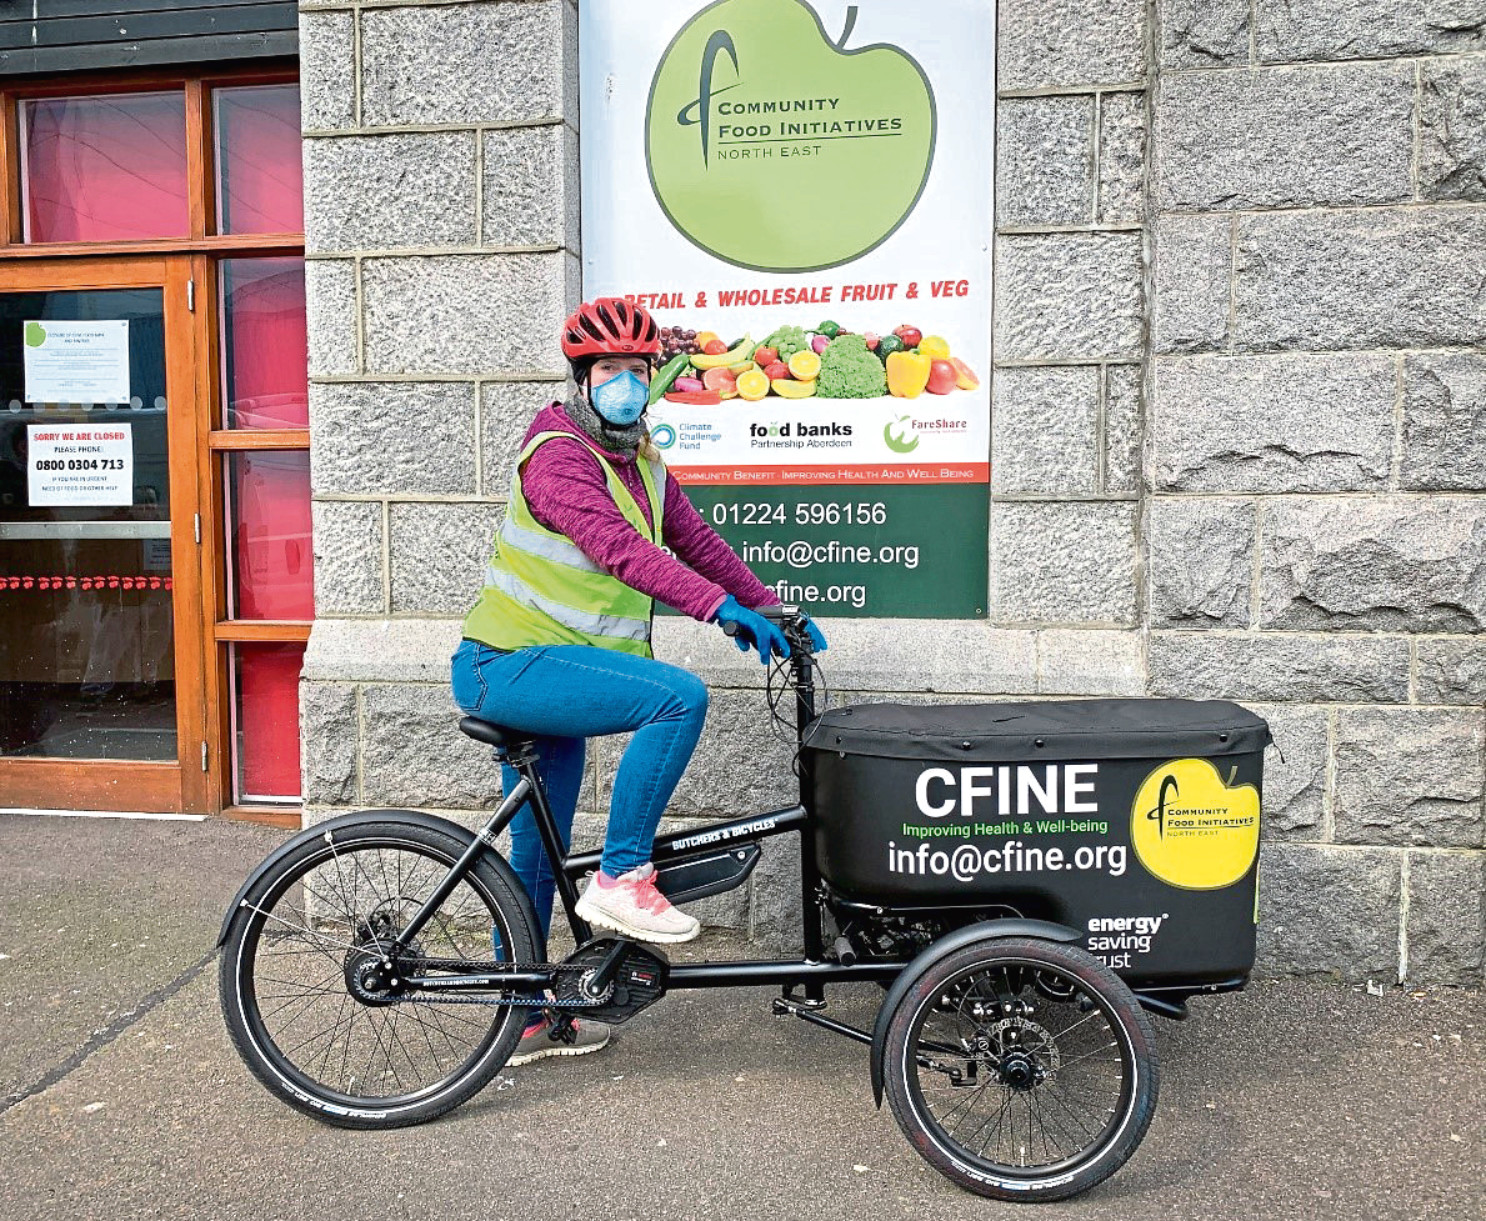 One of the electric bikes in use